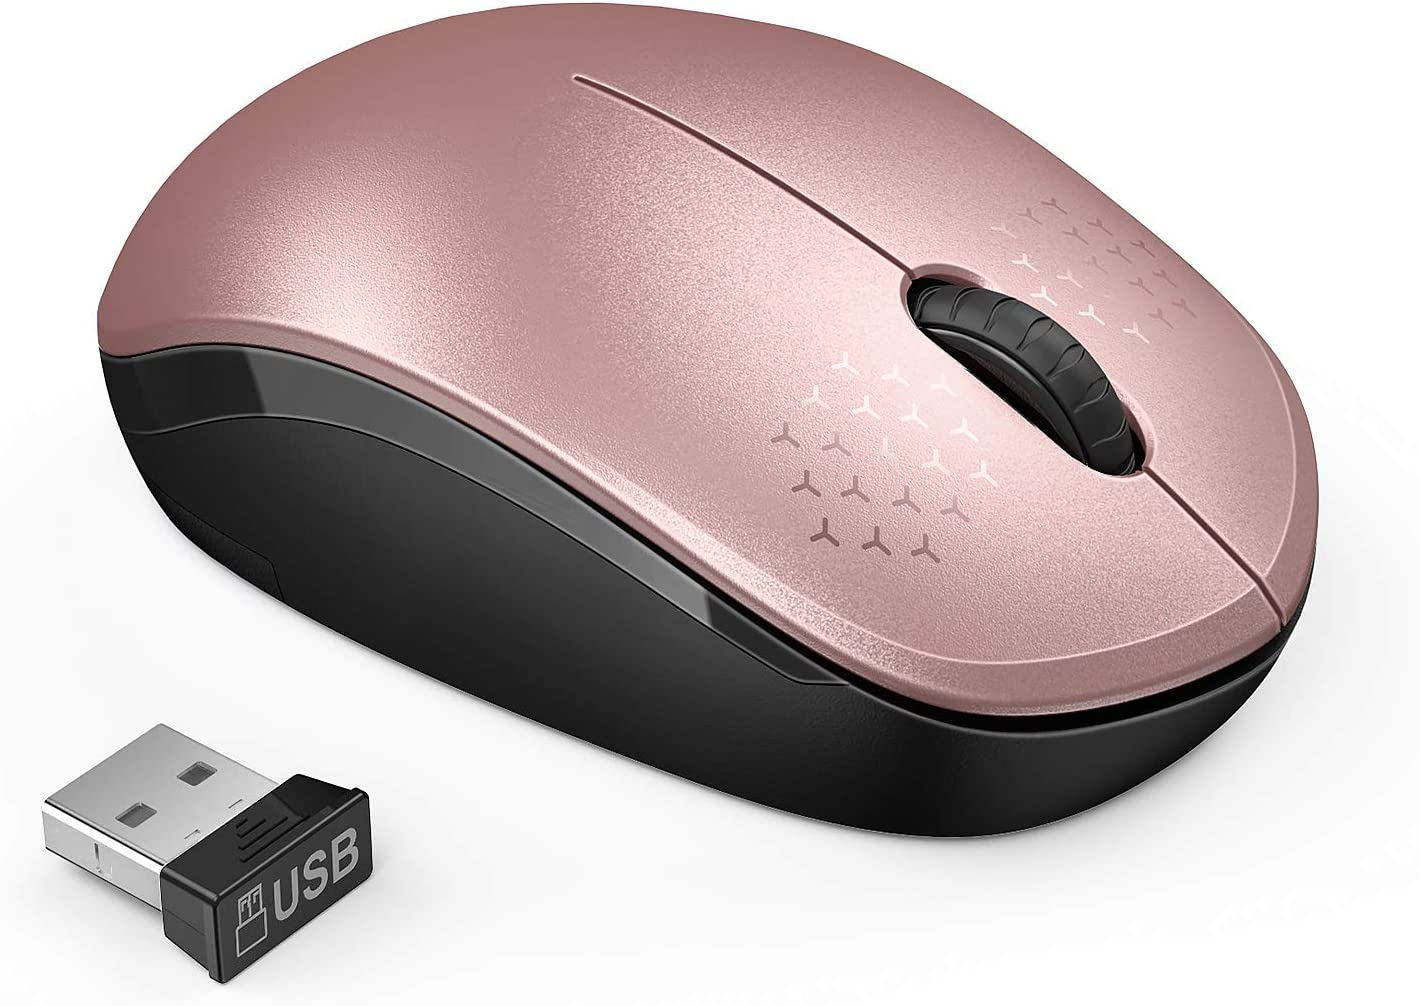 seenda Wireless Mouse, 2.4G Noiseless Mouse with USB Receiver Portable Computer Mice for PC, Tablet, Laptop, Notebook - Rose Gold&Black